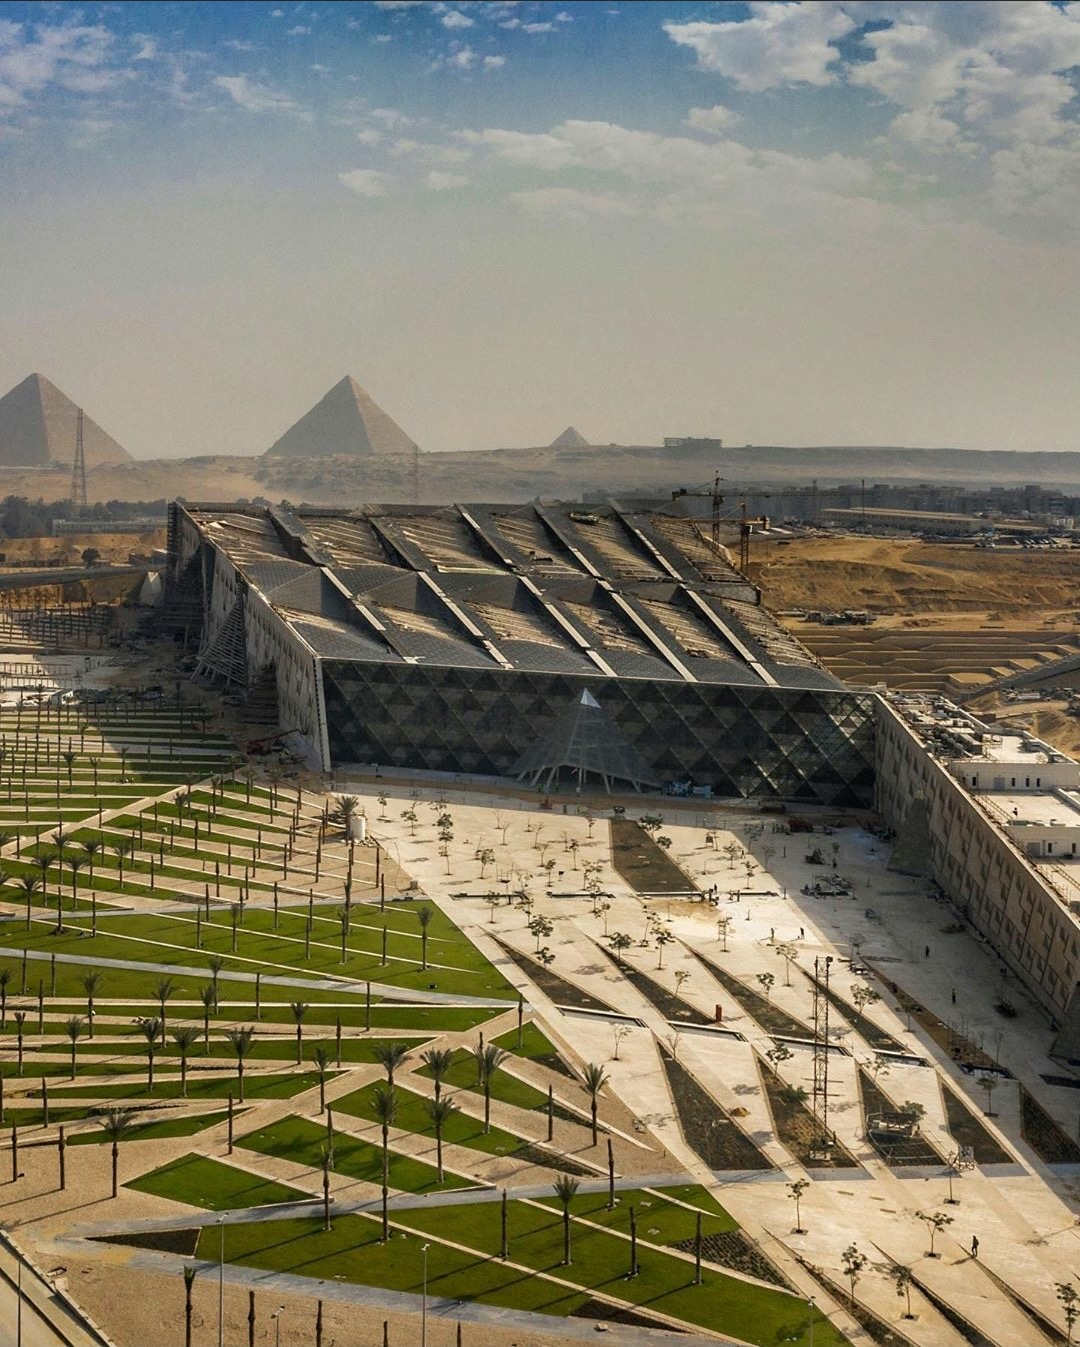 The Grand Egyptian Museum, Giza - 2012-TBD